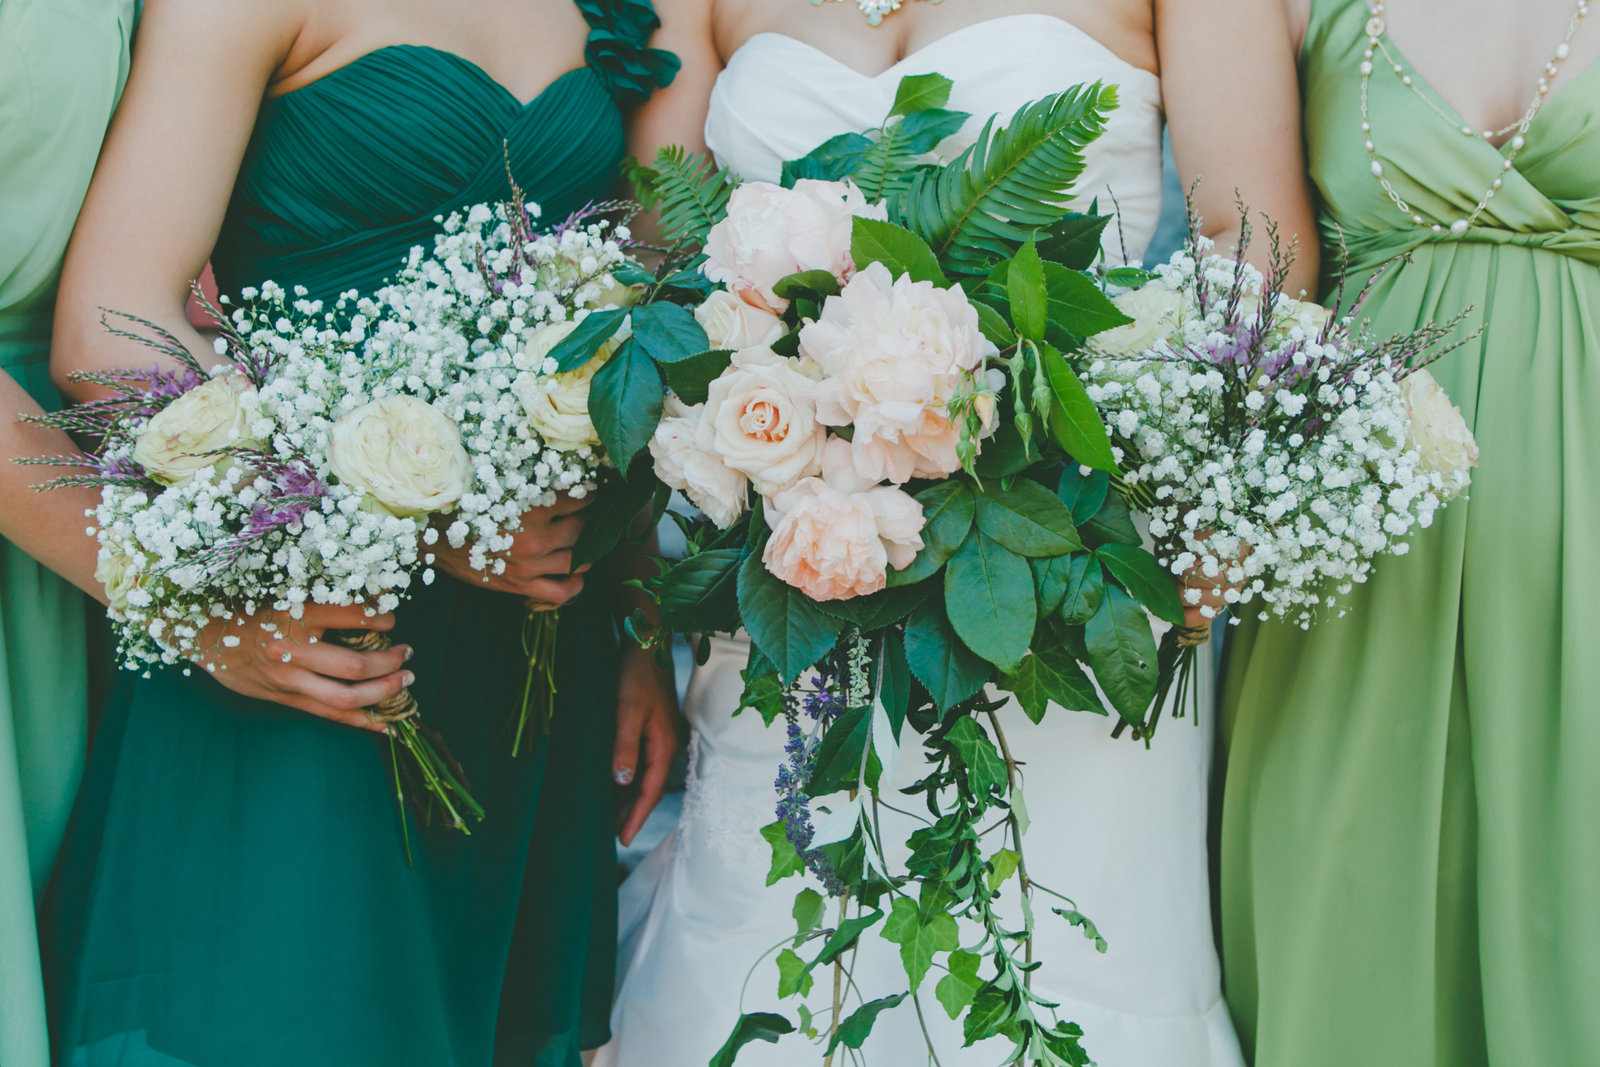 Lush green bride & bridesmaids bouquets